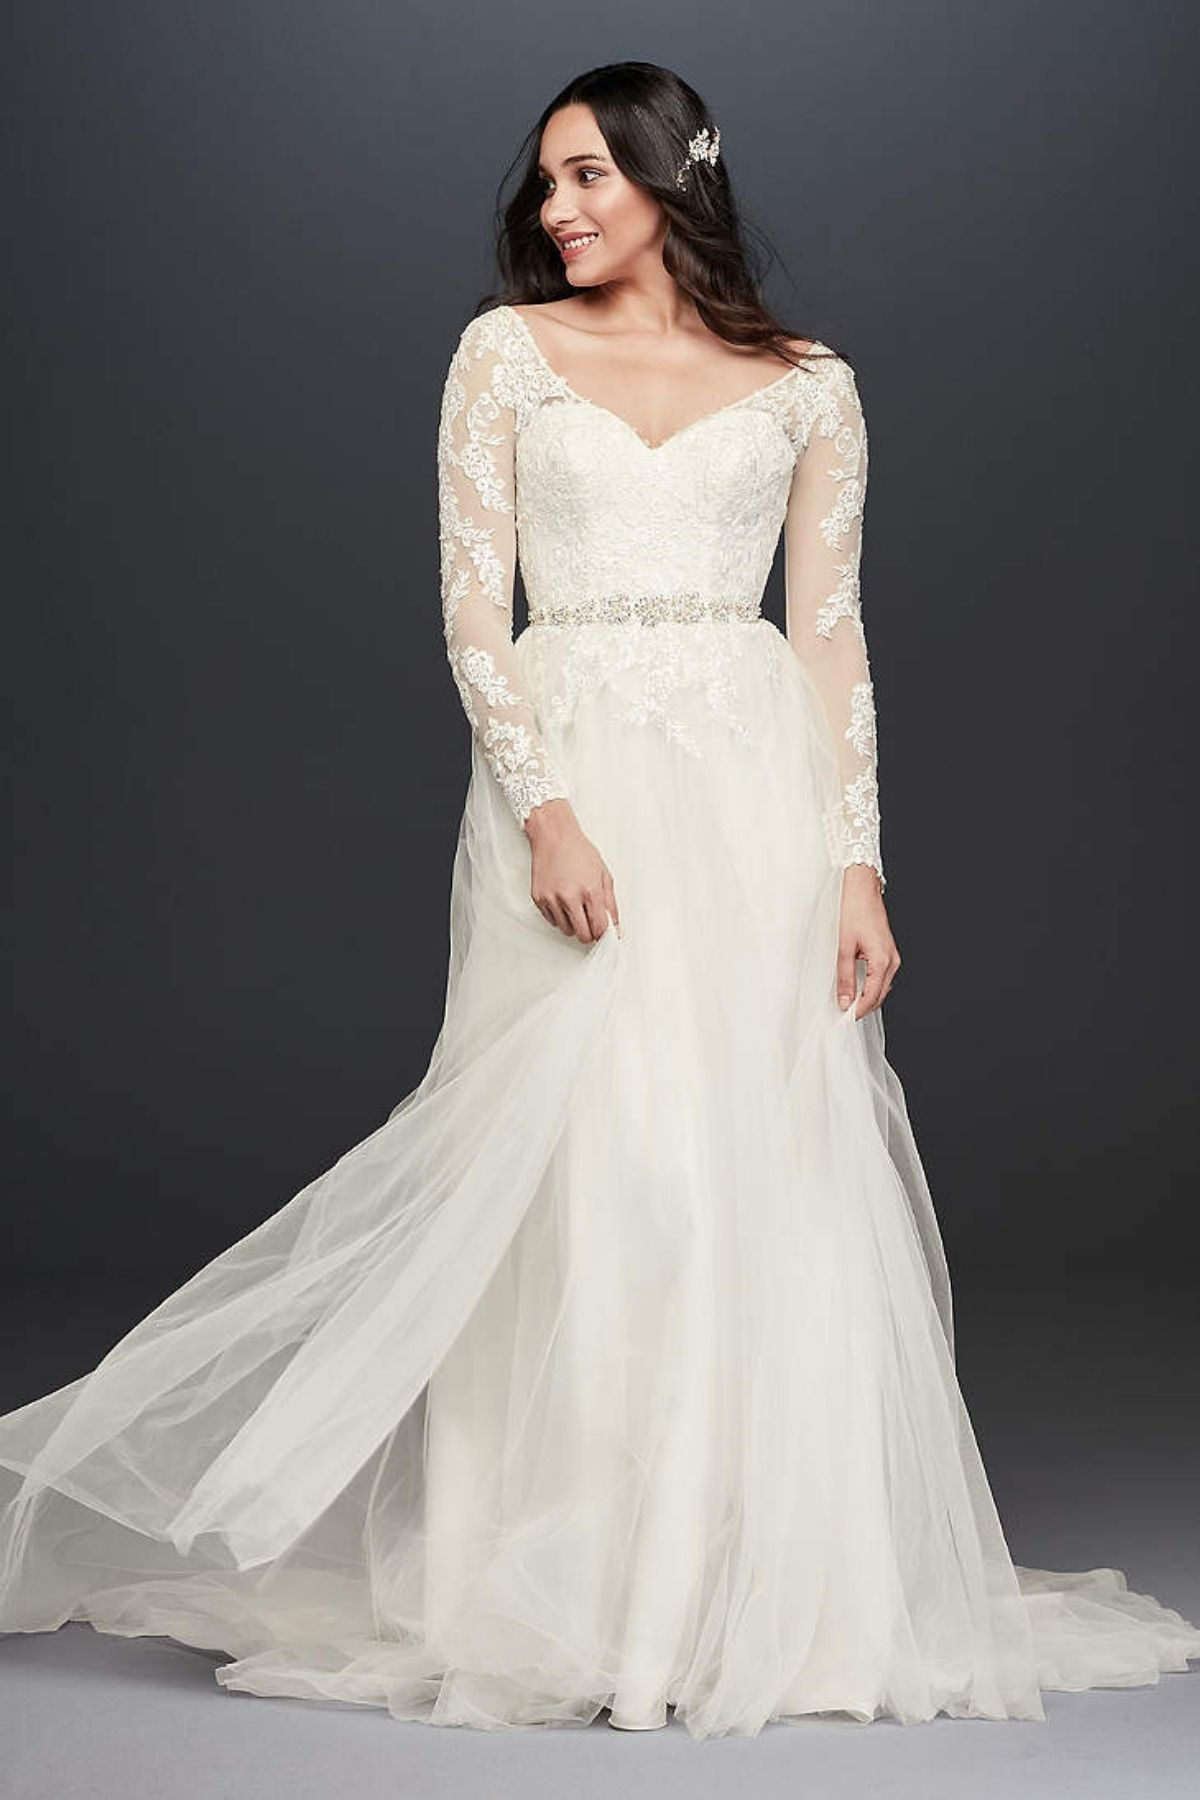 3. Long Sleeve Wedding Dress With Low Back